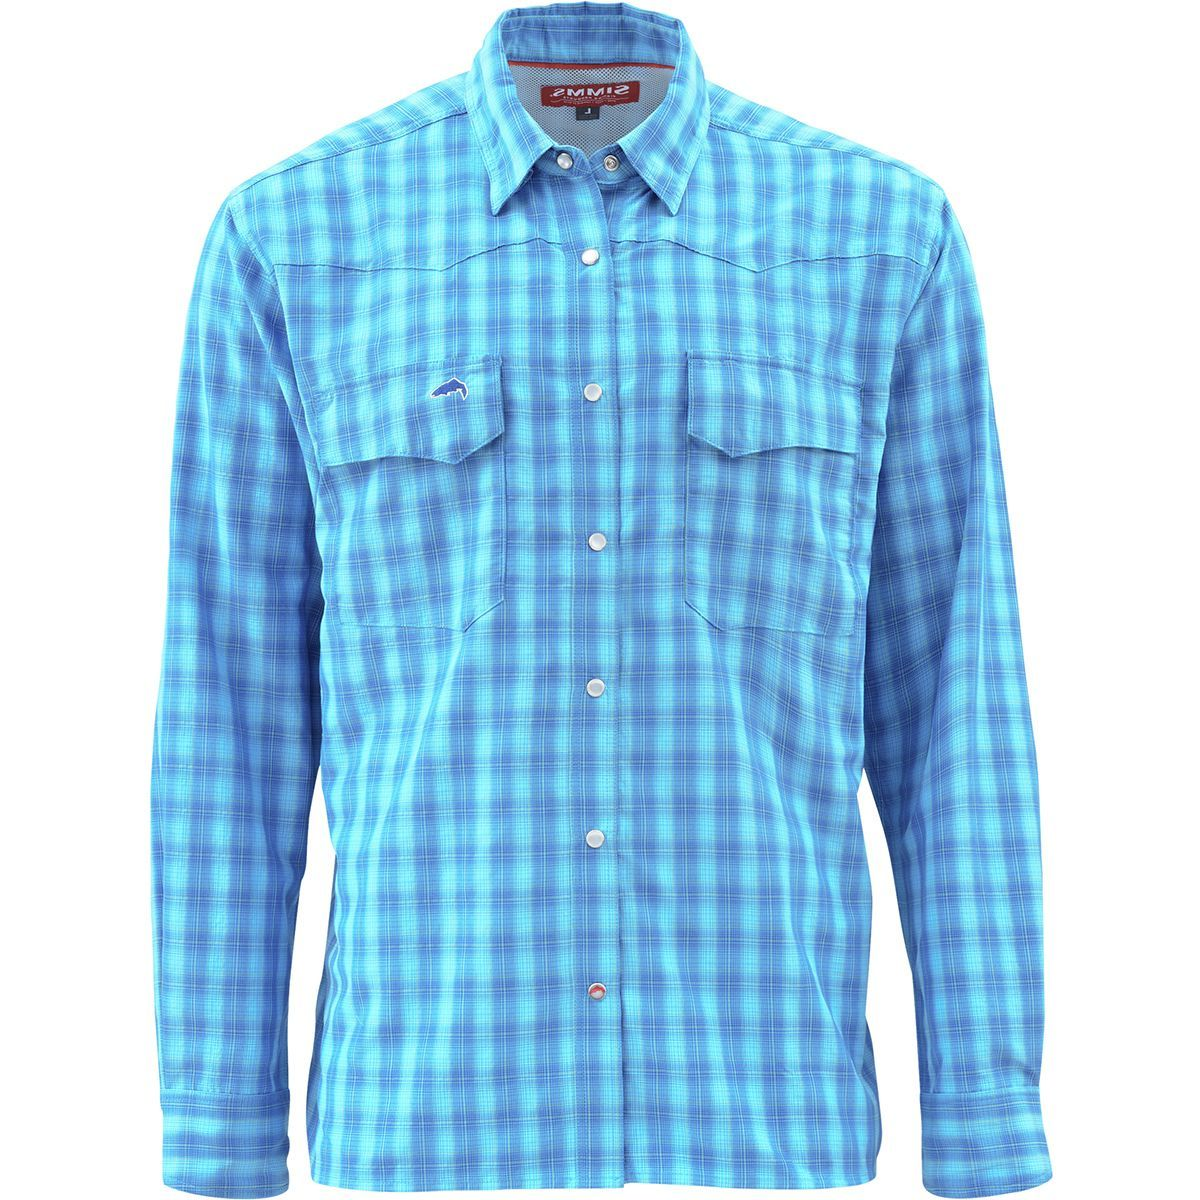 Simms Big Sky Shirt - Men's